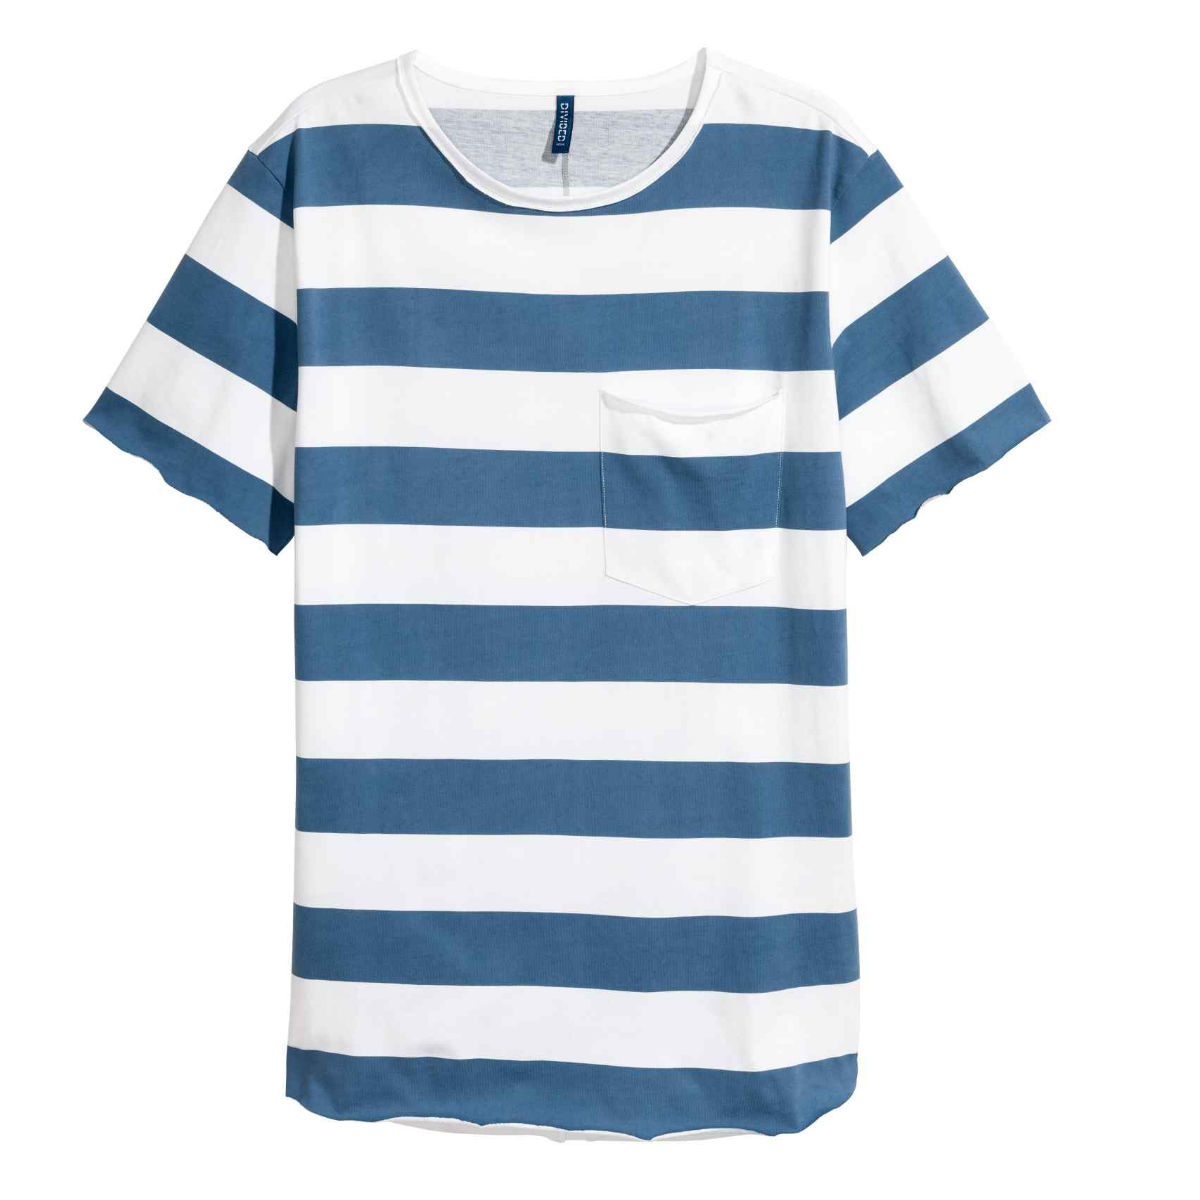 Blue and white stripe t-shirt with pocket, £8.99, H&M